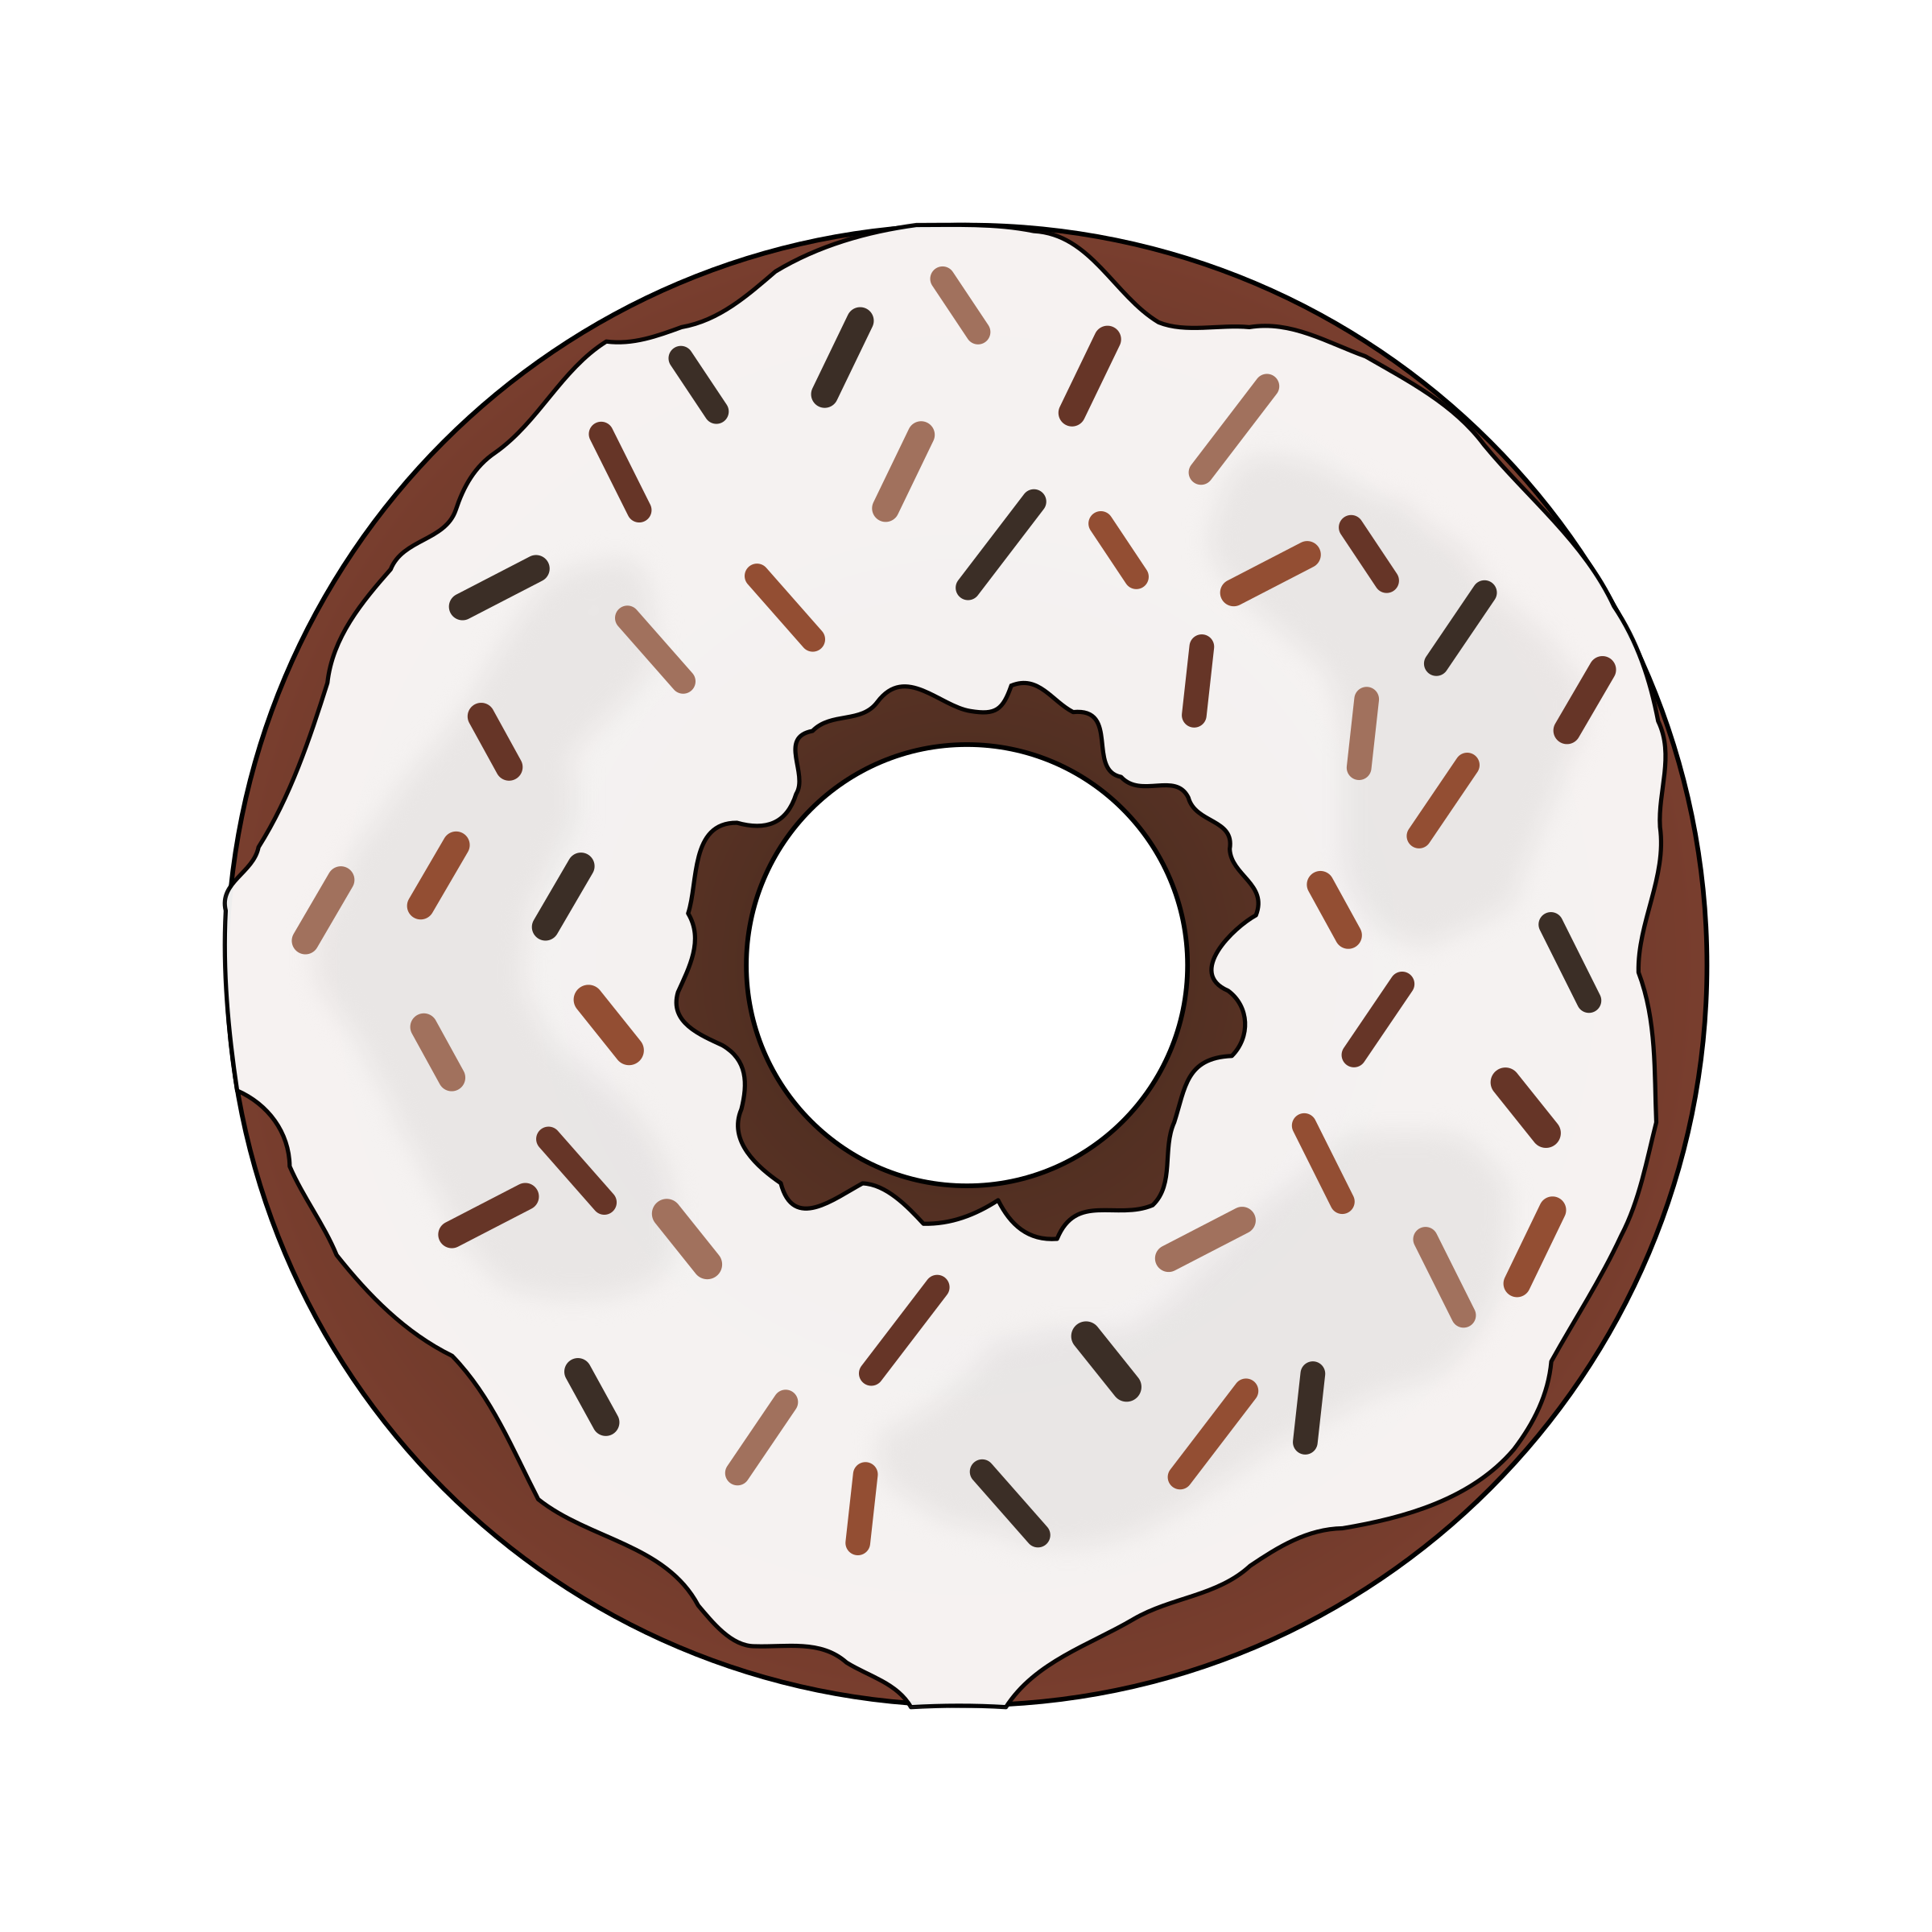 Brown image png. Donut clipart big donut